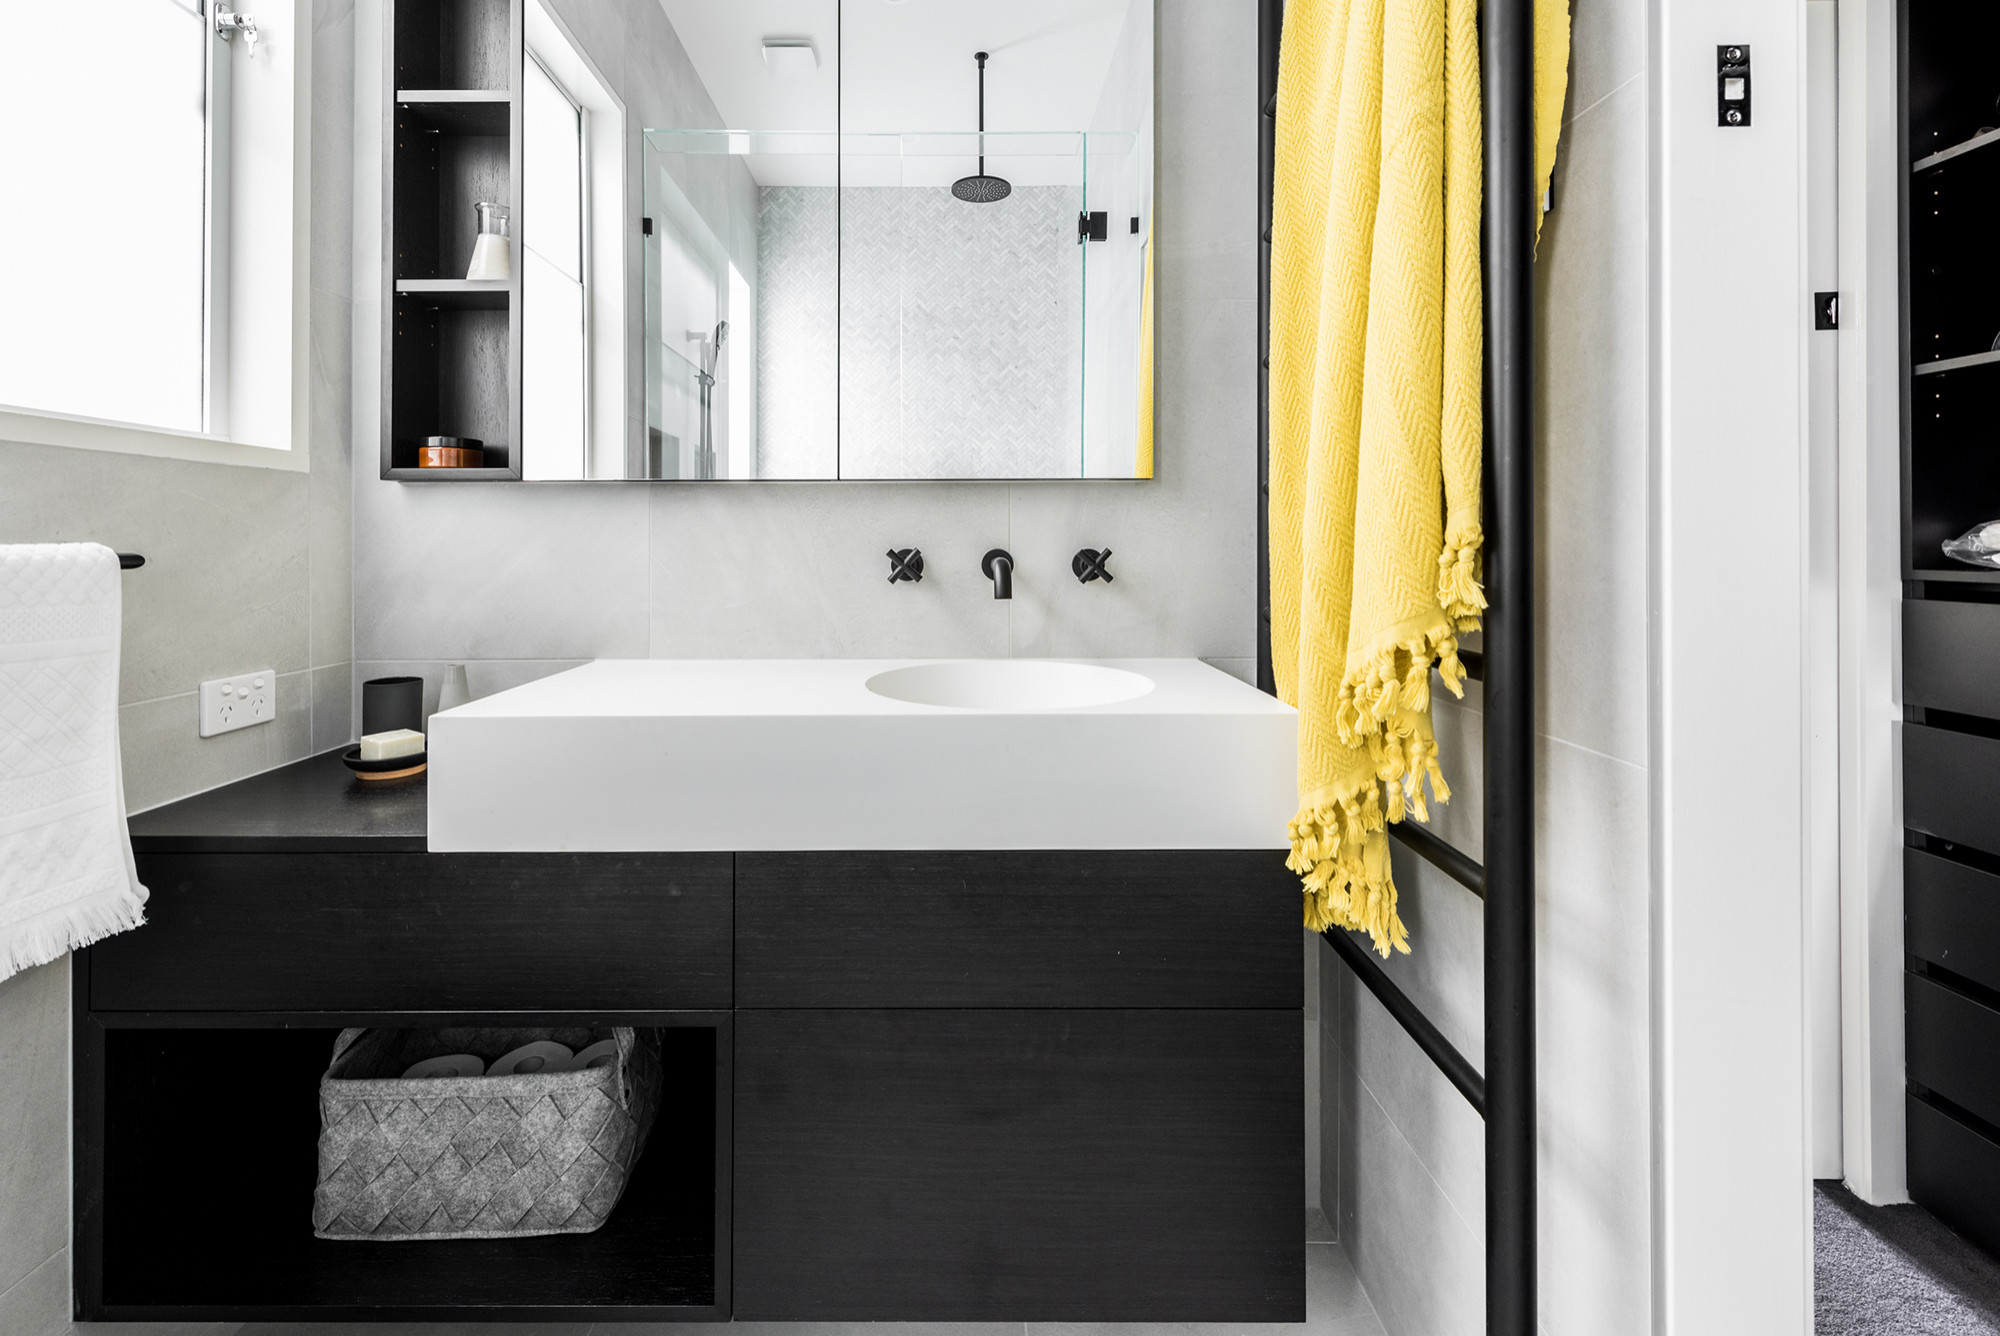 75 Beautiful Black Bathroom With An Integrated Sink Pictures Ideas January 2021 Houzz